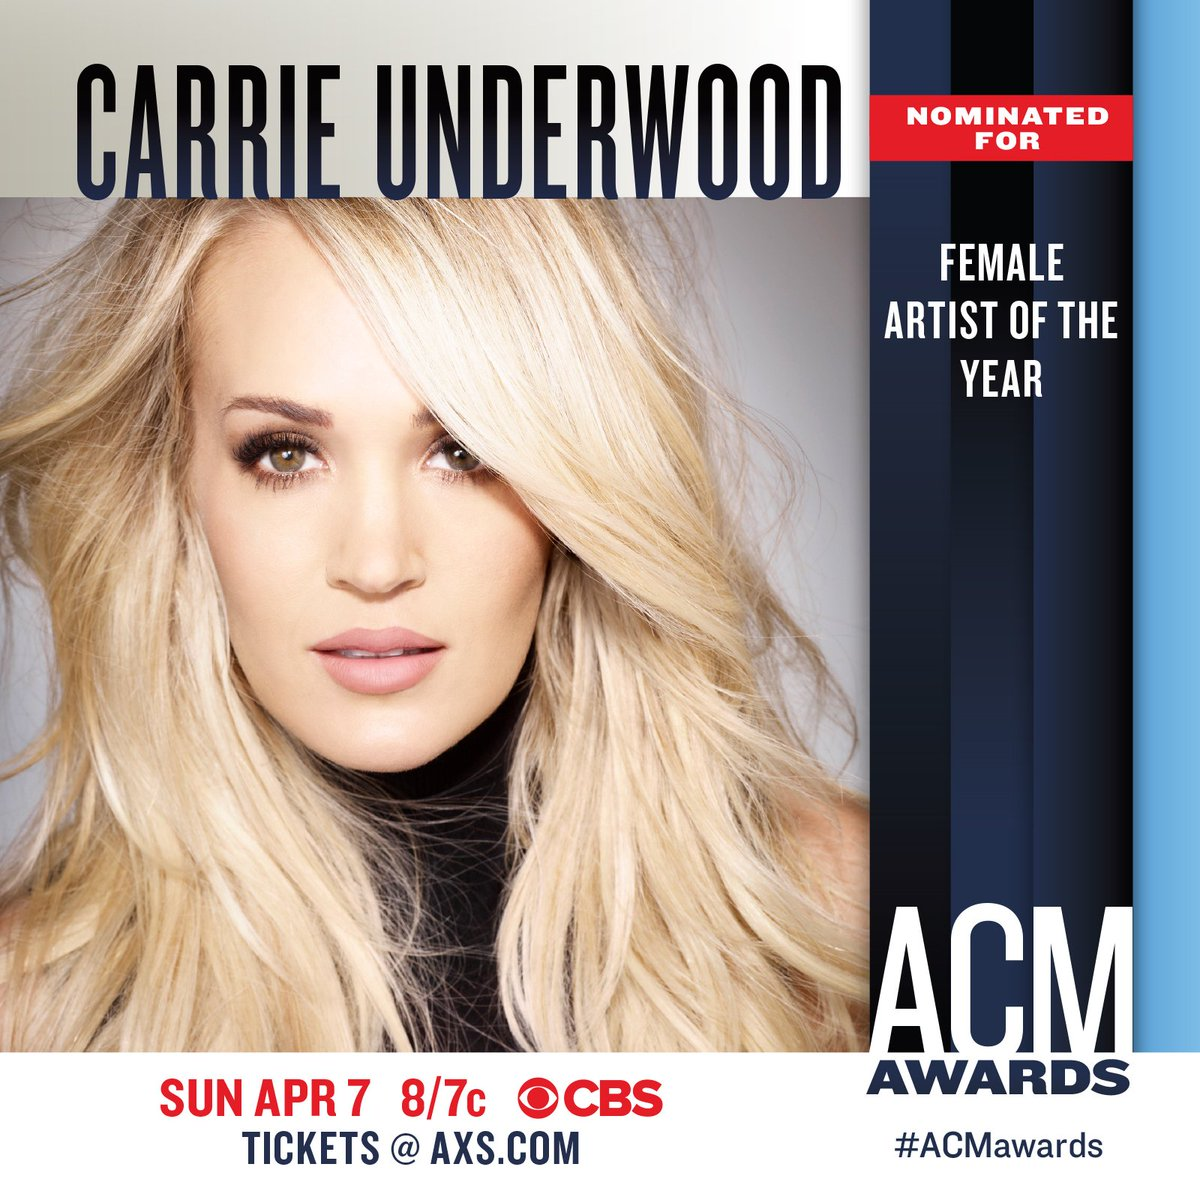 Congratulations, Carrie on your 2019 @ACMawards nomination! #FemaleArtistOfTheYear -TeamCU